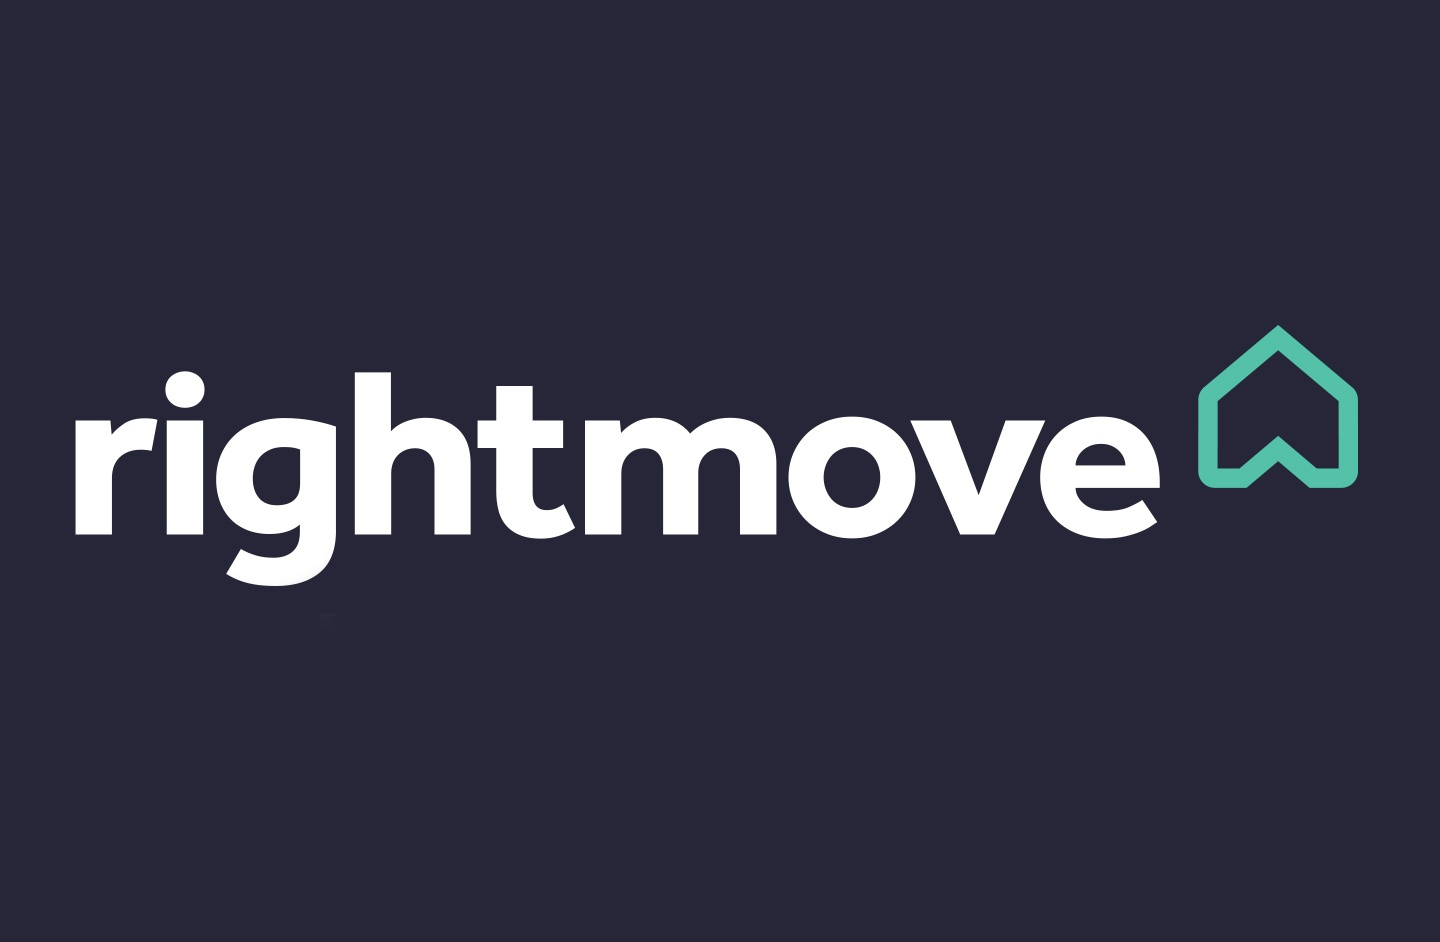 How do you get your property listing correctly featured on Rightmove?